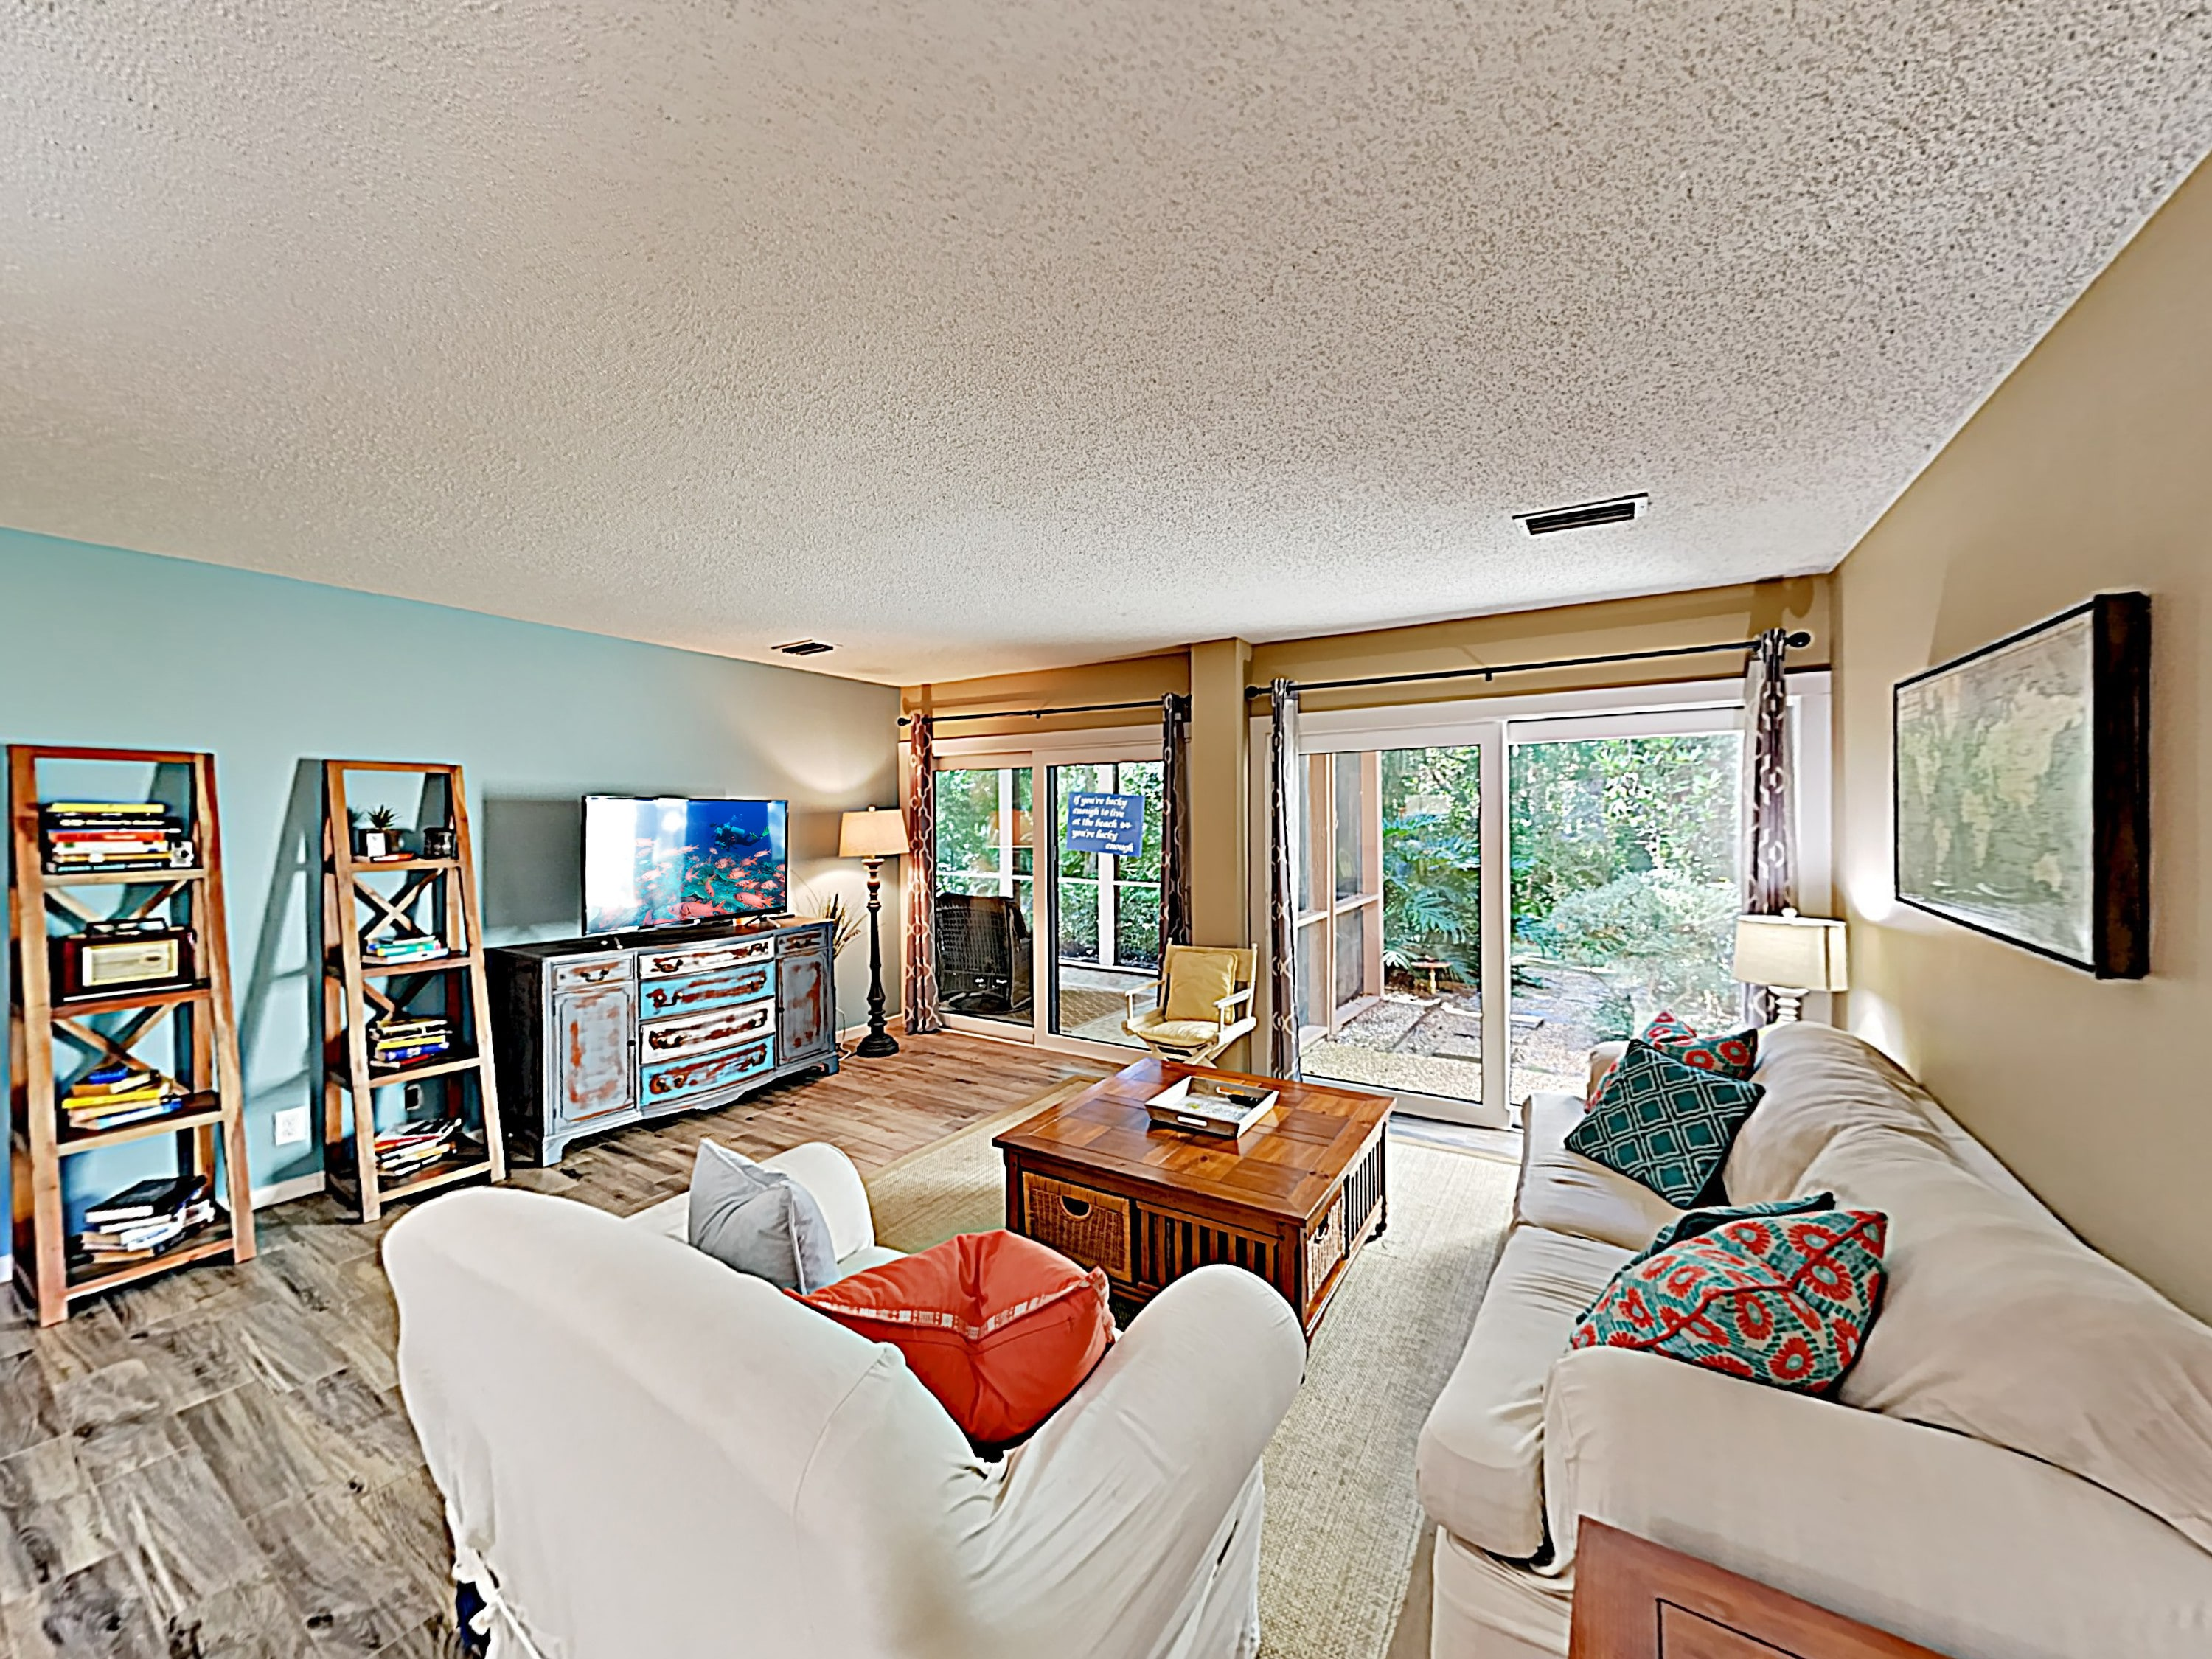 Welcome to Fernandina Beach! This condo is professionally managed by TurnKey Vacation Rentals.